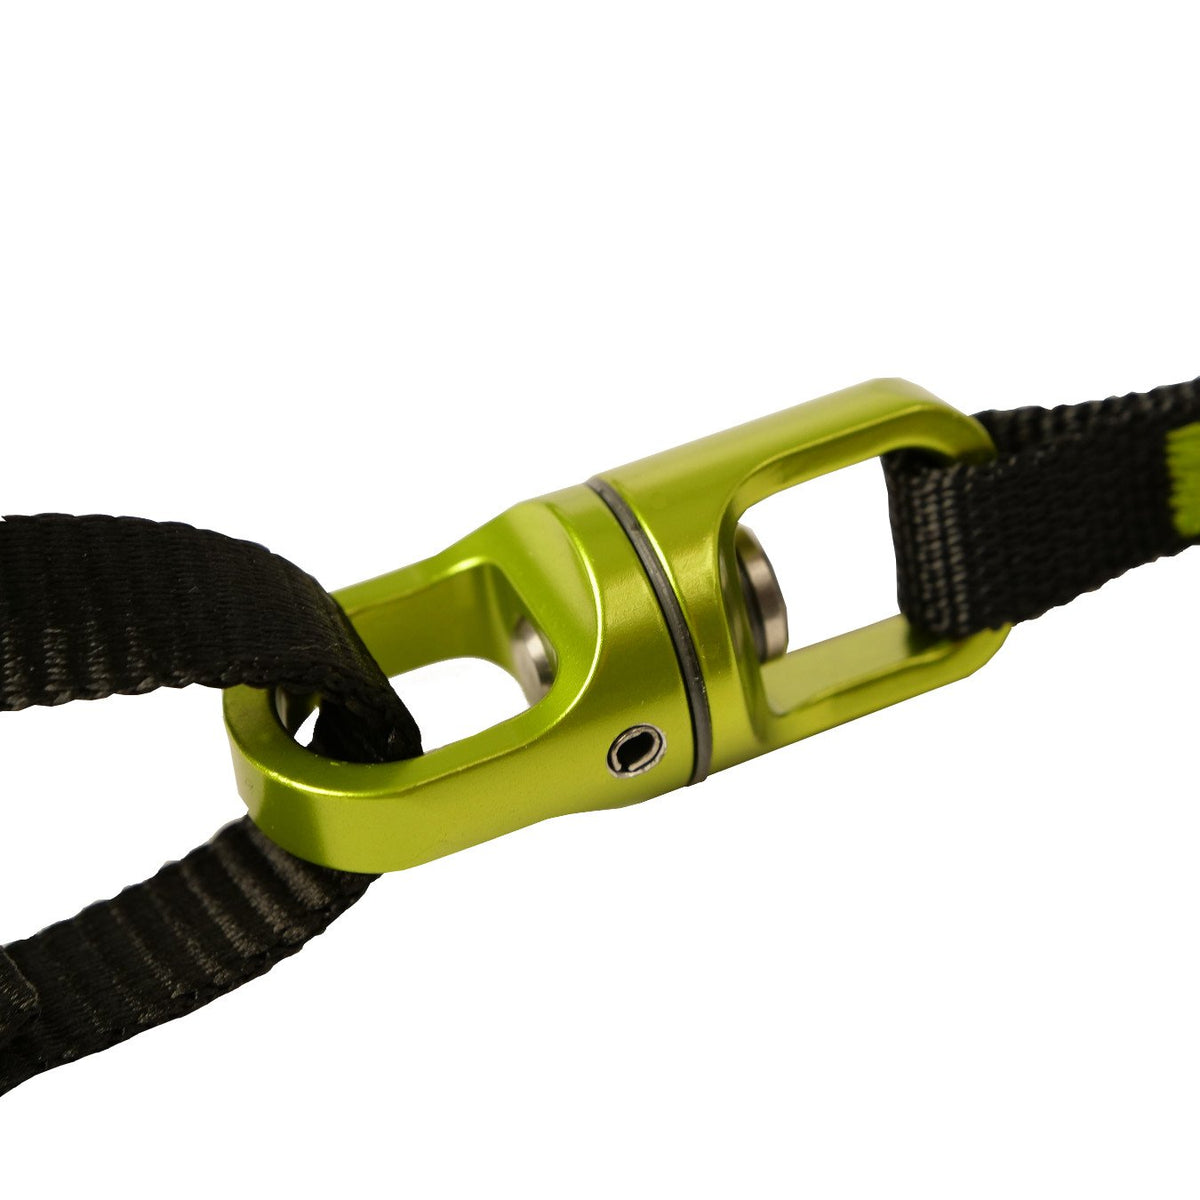 Close up view of the Black Diamond Spinner Leash swivelling mechanism in Green